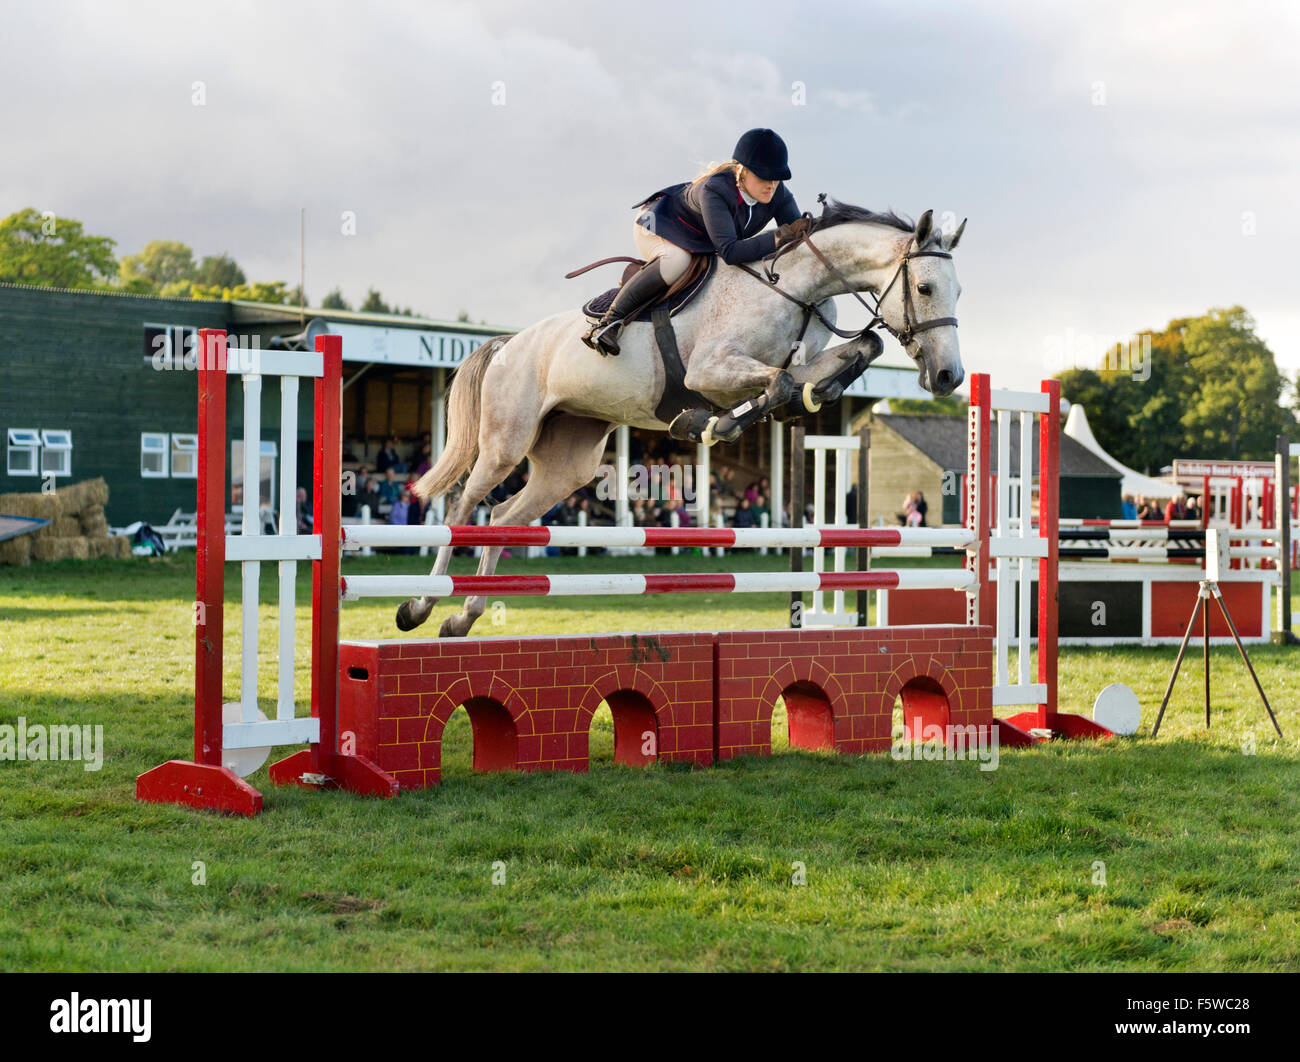 Showjumping competition at Nidderdale Show, North Yorkshire, UK, September 2015 - Stock Image